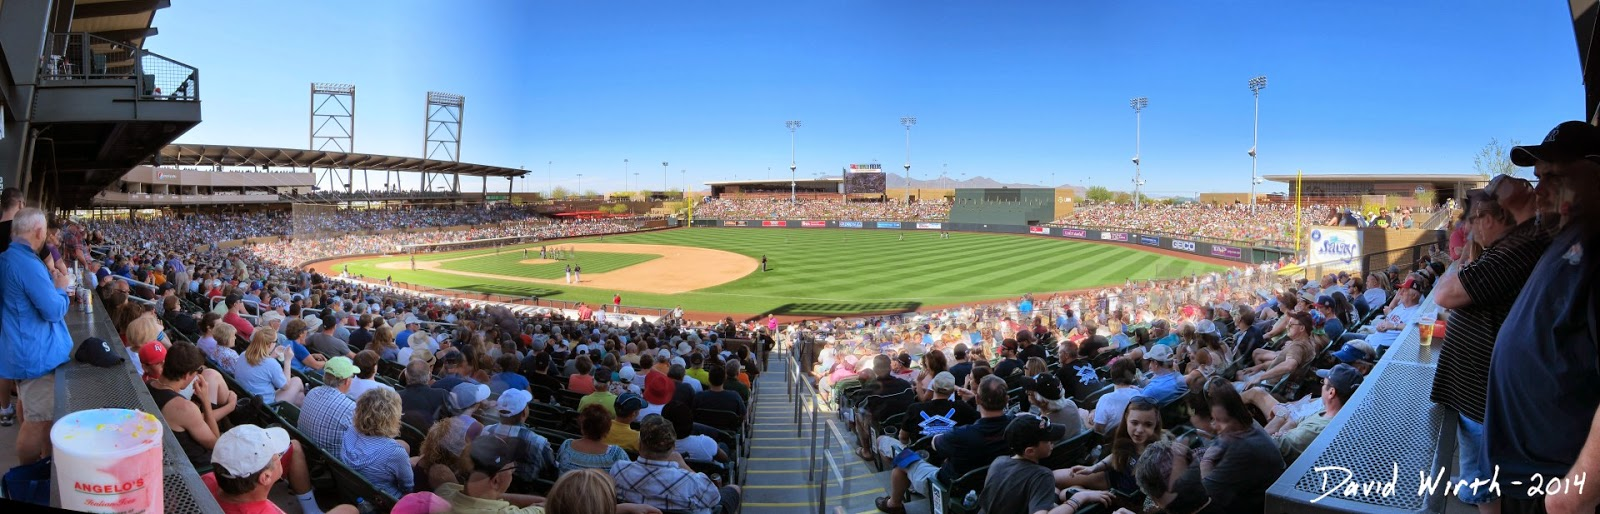 mlb arizona baseball stadium